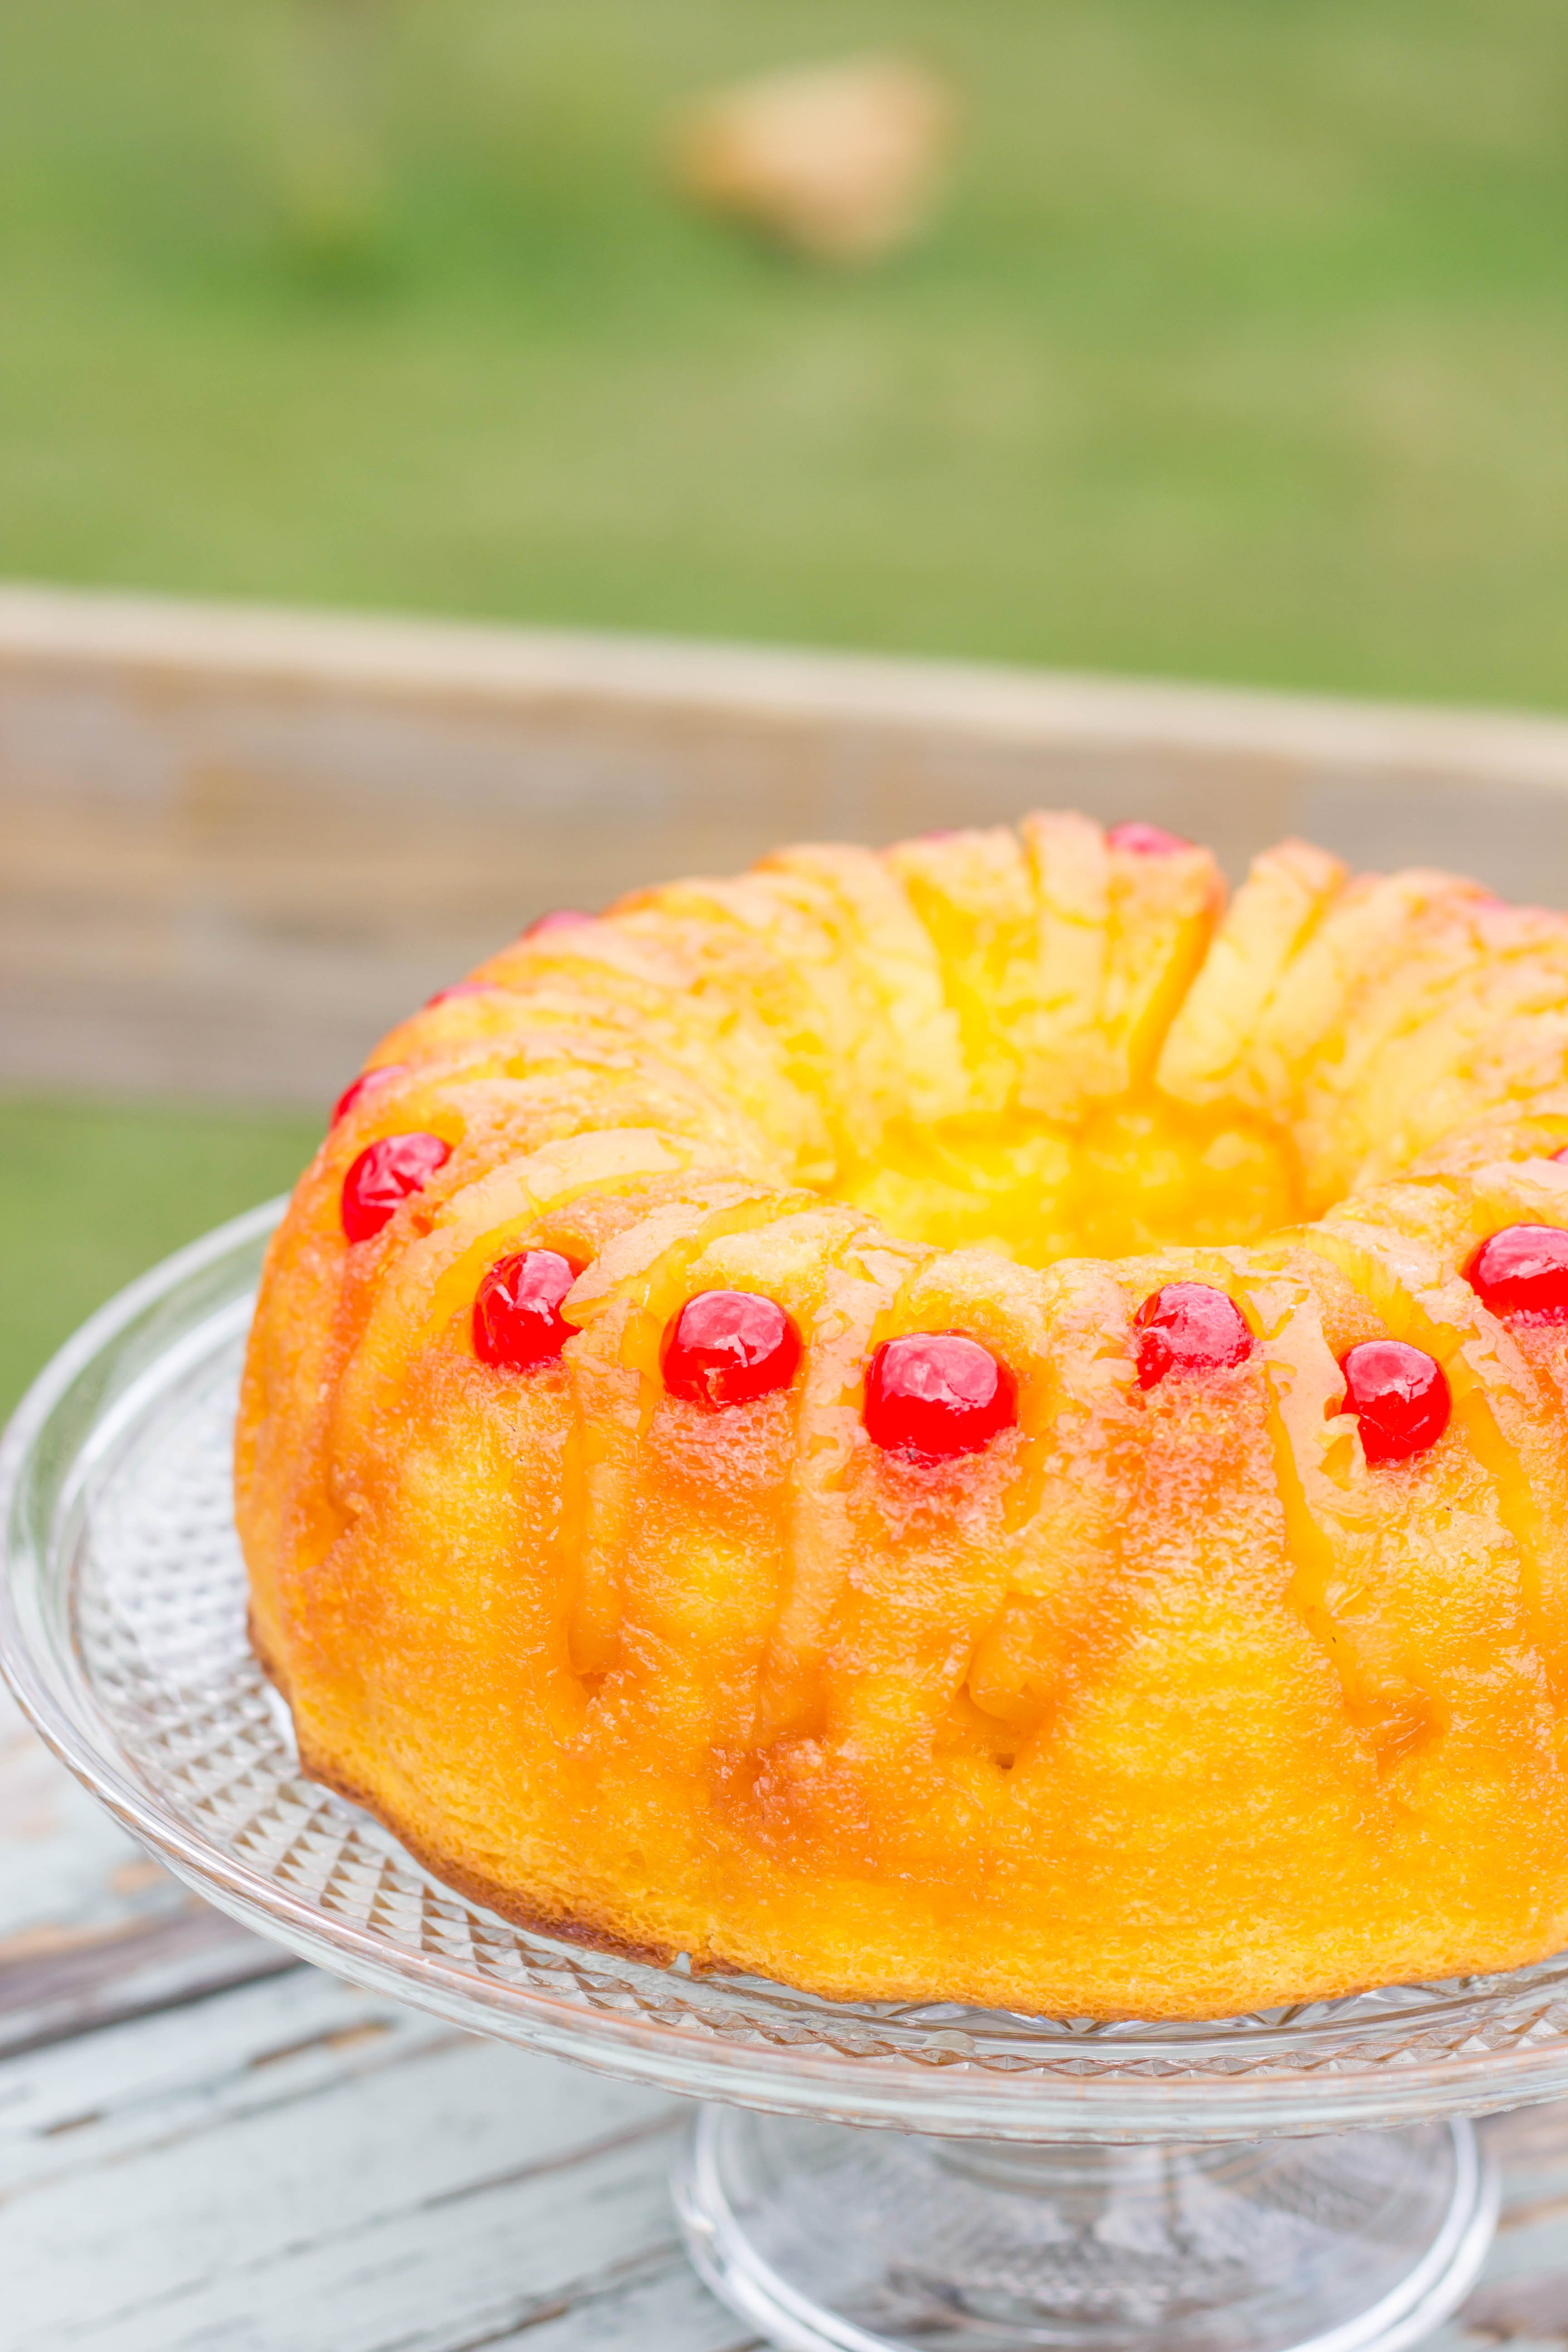 Looking For A Recipe For Pineapple Upside Down Cake